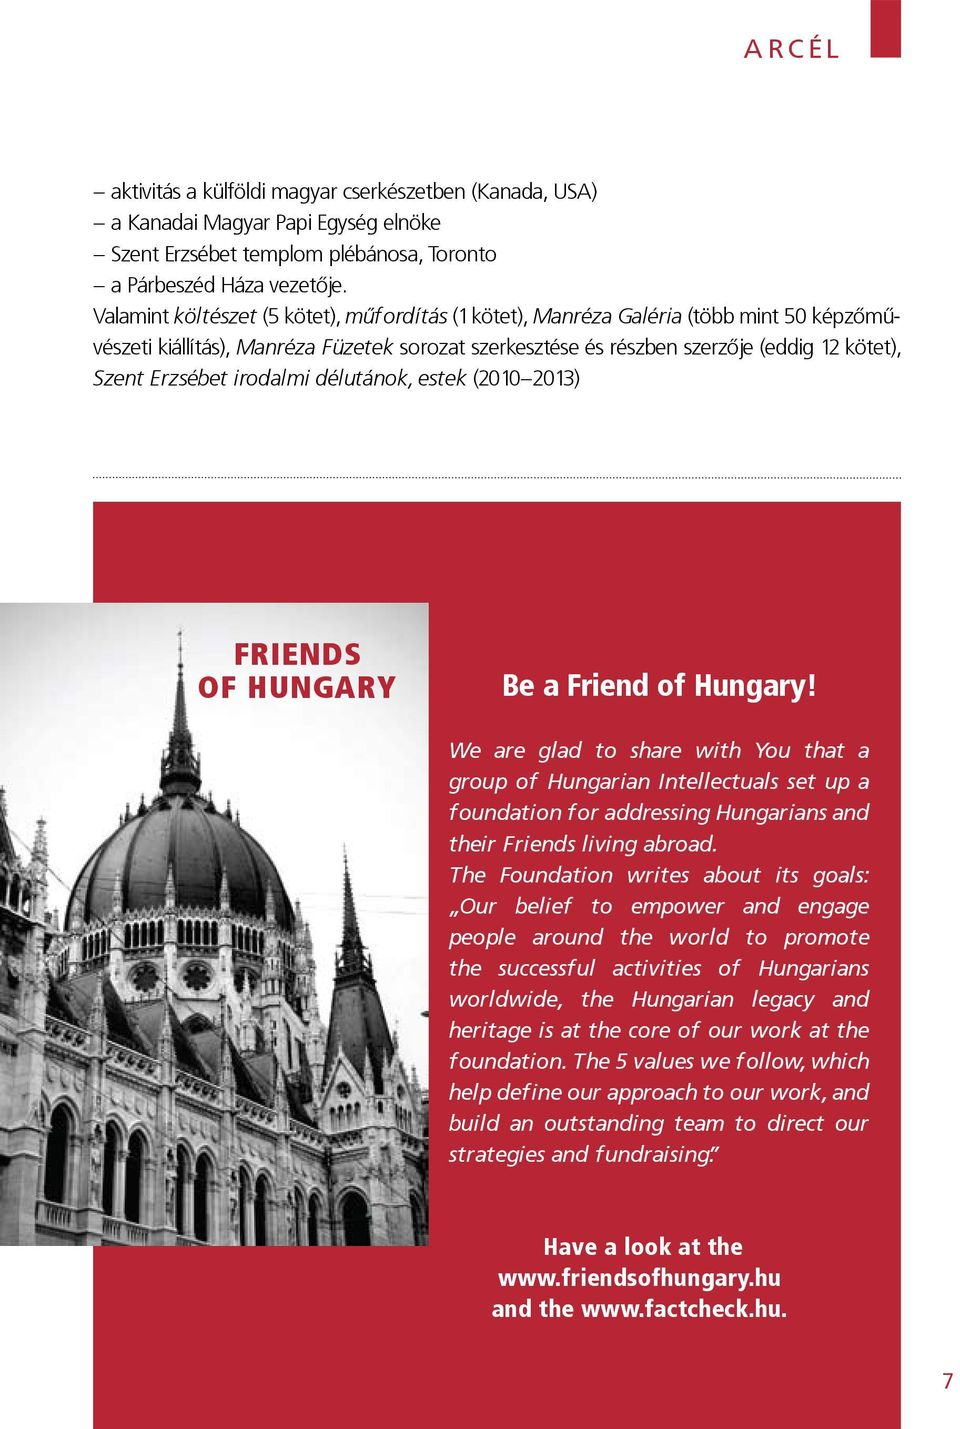 irodalmi délutánok, estek (2010 2013) FRIENDS OF HUNGARY Be a Friend of Hungary!